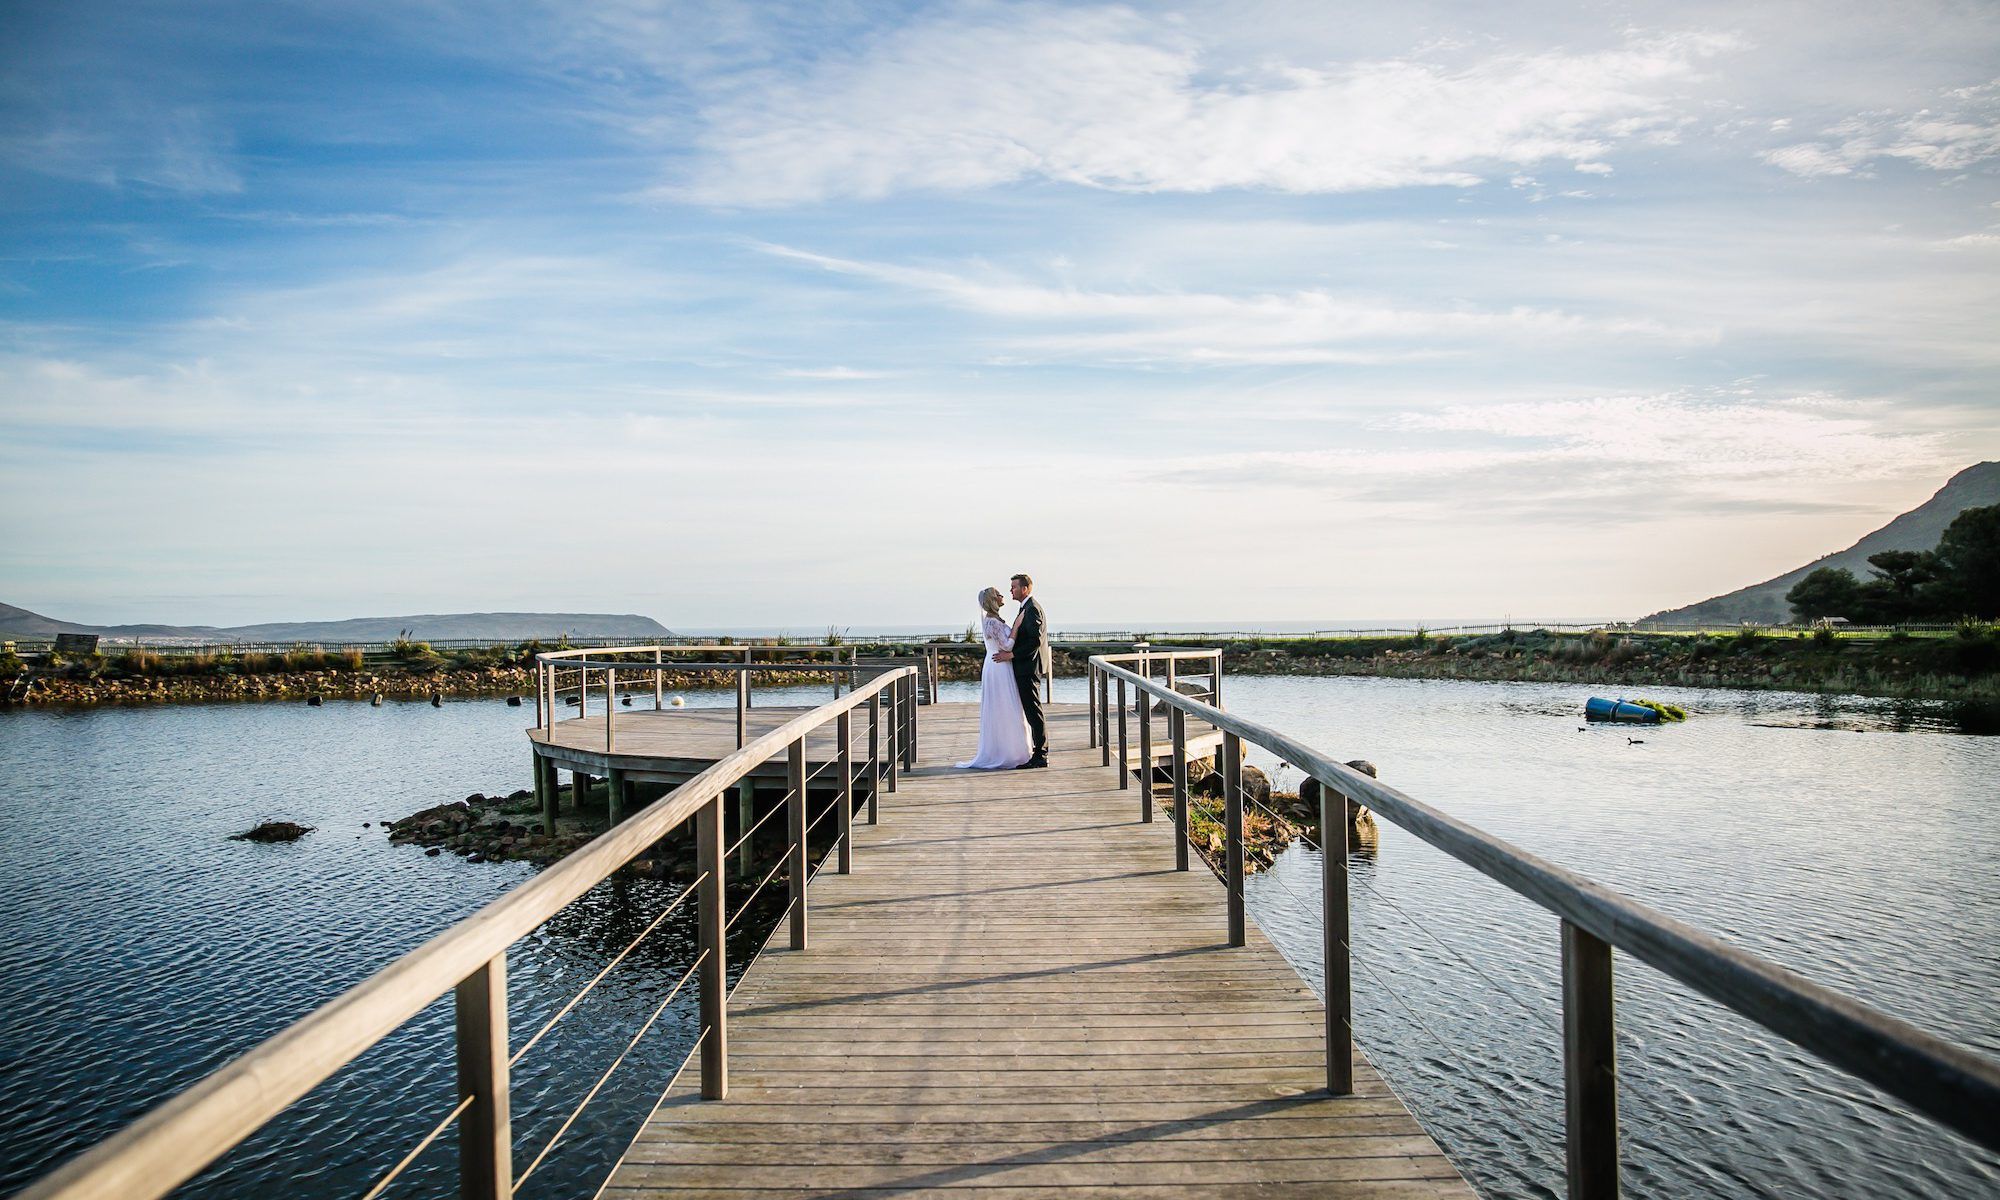 A Vineyard Wedding Venue With Sea Views: Wedding Venues By The Water At Reisefeber.org